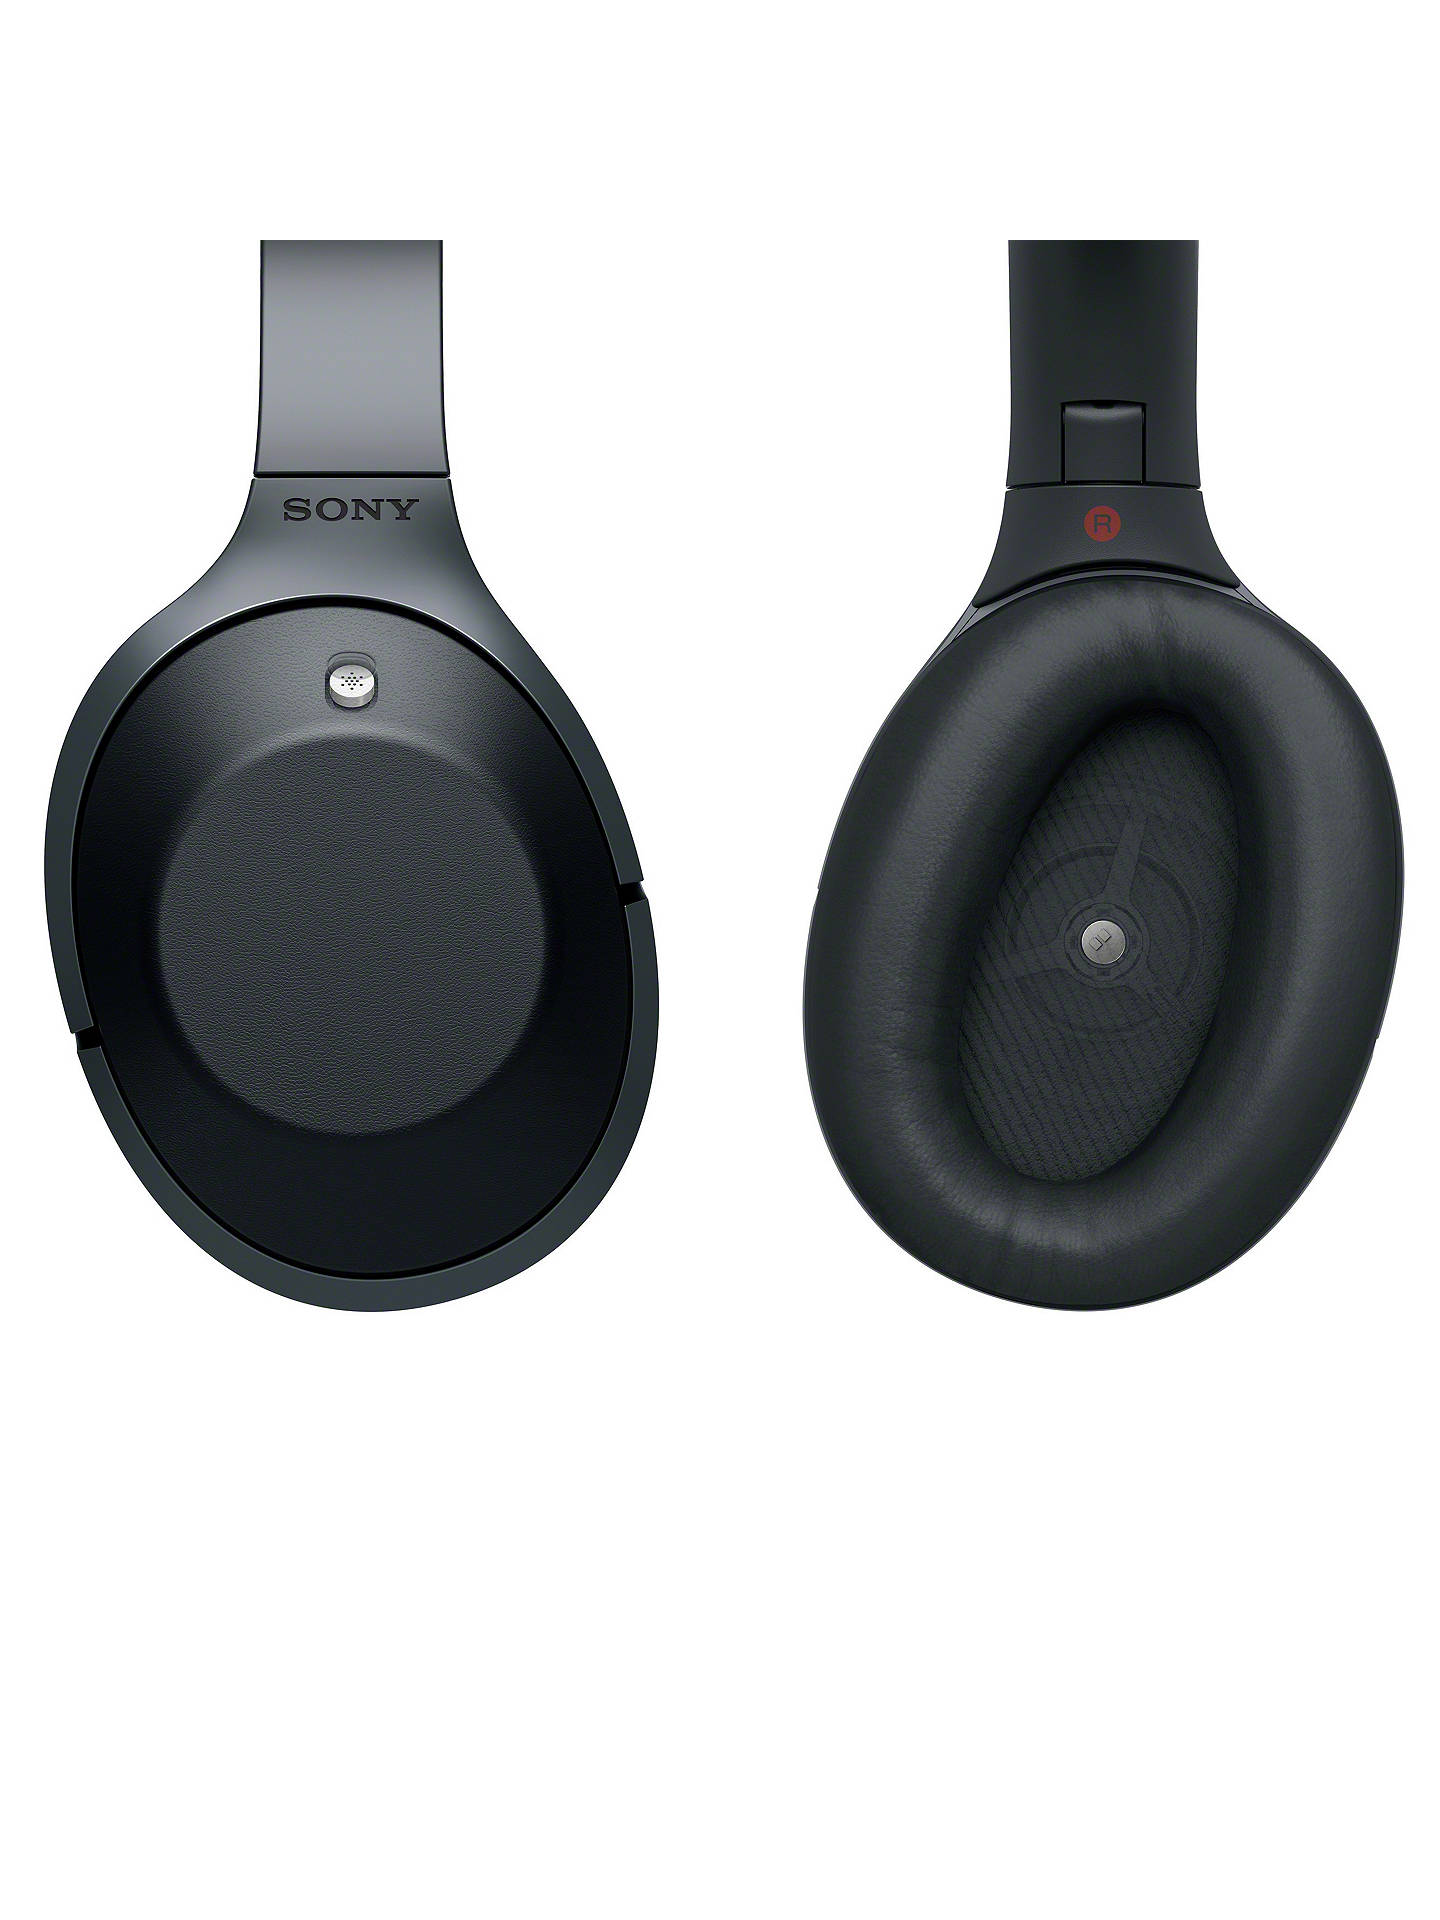 Buy Sony MDR-1000X Noise Cancelling Wireless Bluetooth NFC High-Resolution Audio Over-Ear Headphones with Mic/Remote, Black Online at johnlewis.com